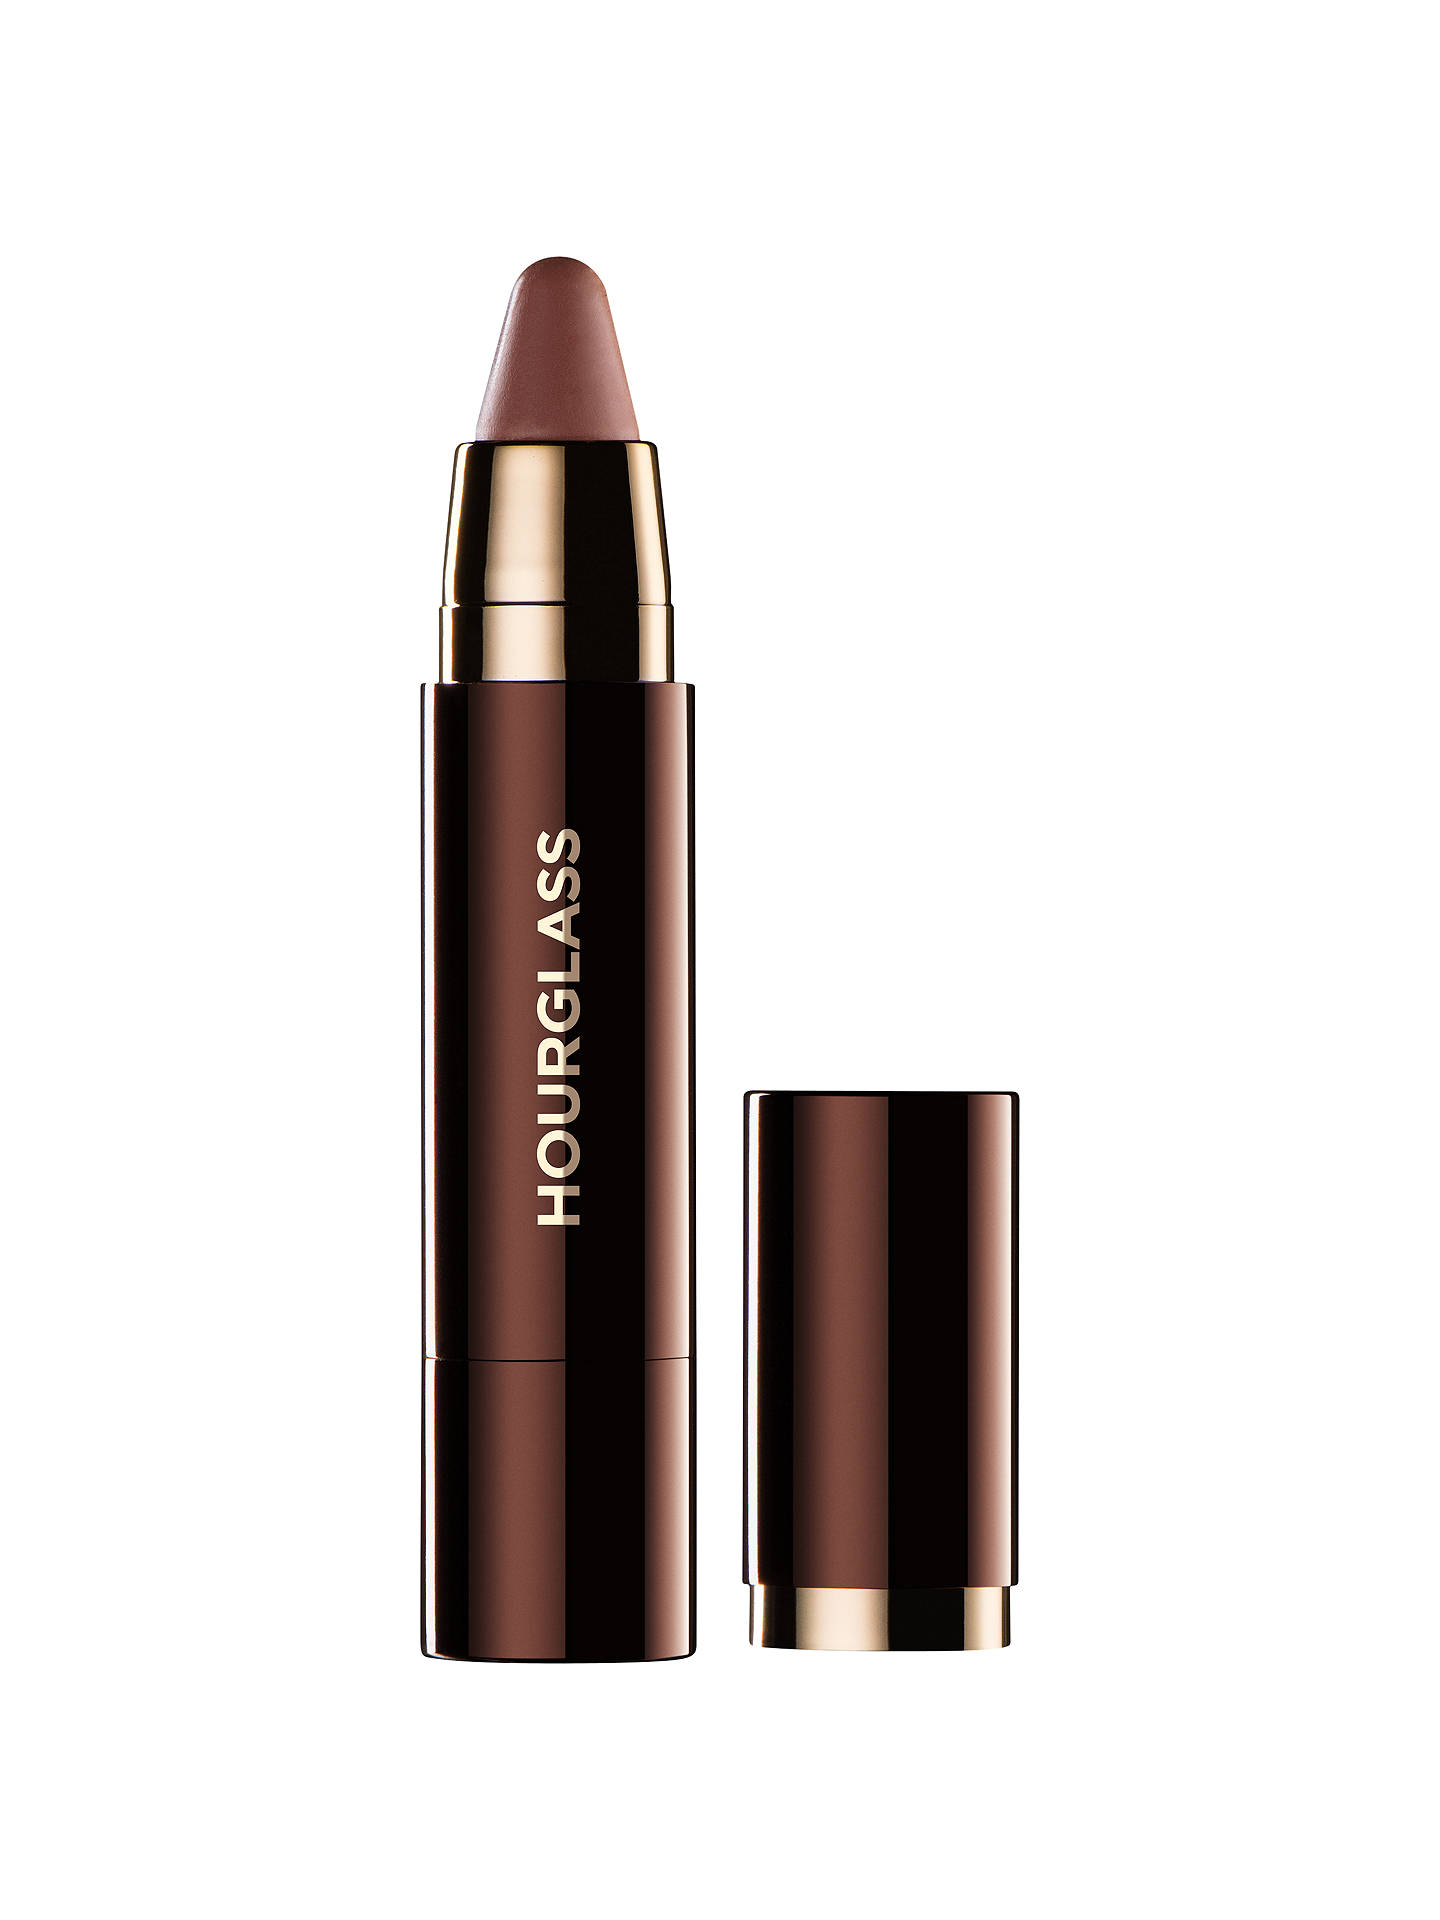 BuyHourglass Femme Nude Lip Stylo, Nude 6 Online at johnlewis.com